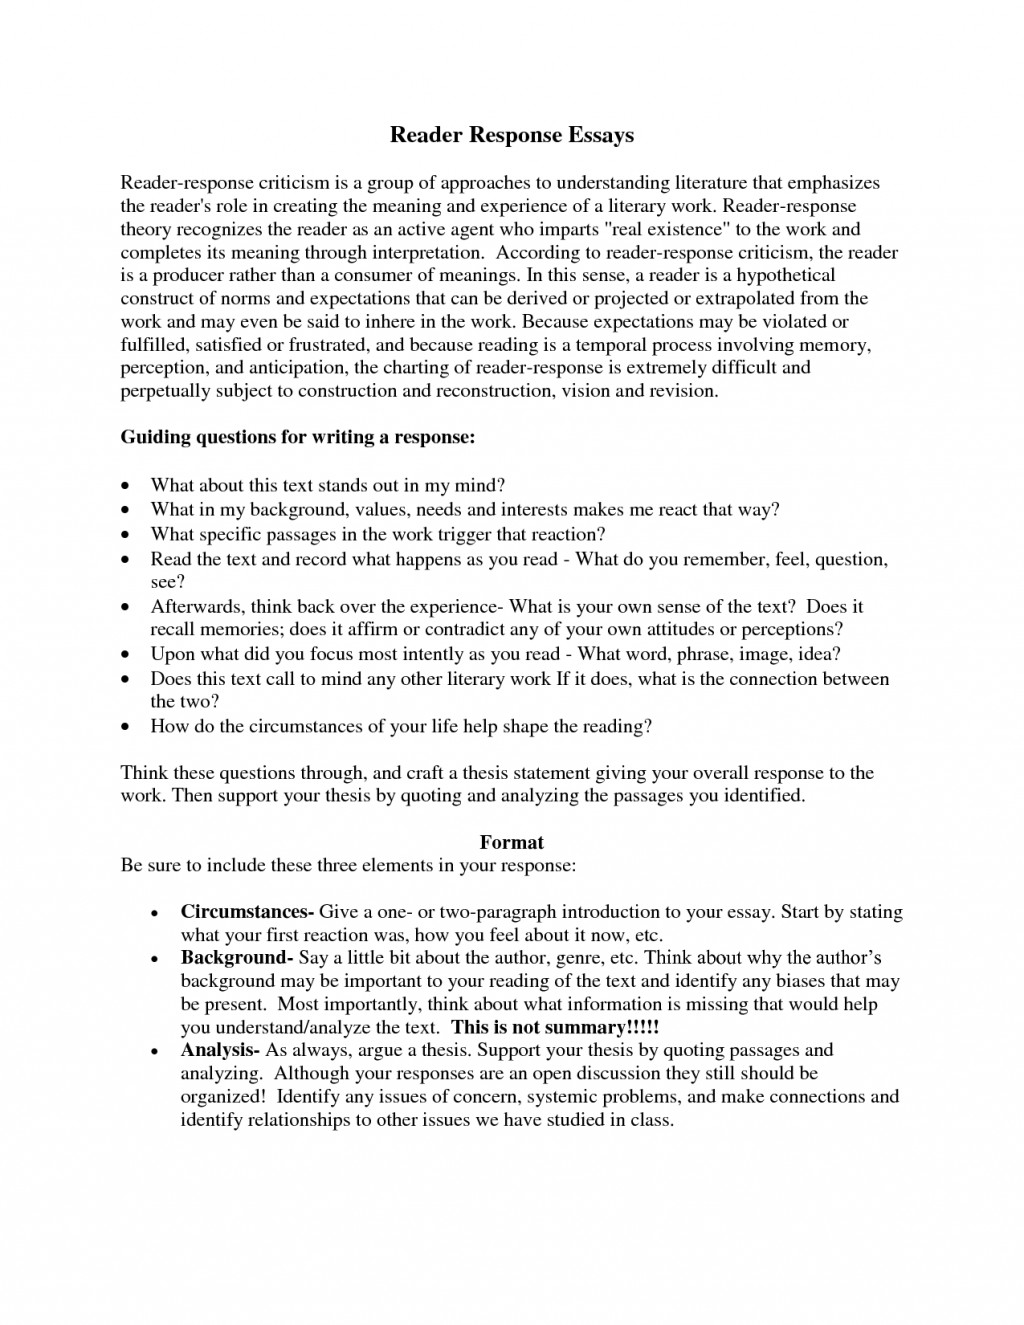 005 Response Essay Example Background Define Discussd Illustrate With Sample Of Critical Summaryalysis Crossing Brooklyn How To Write Introduction Writing Workshop Awful Text Analysis Extended Year 12 Large